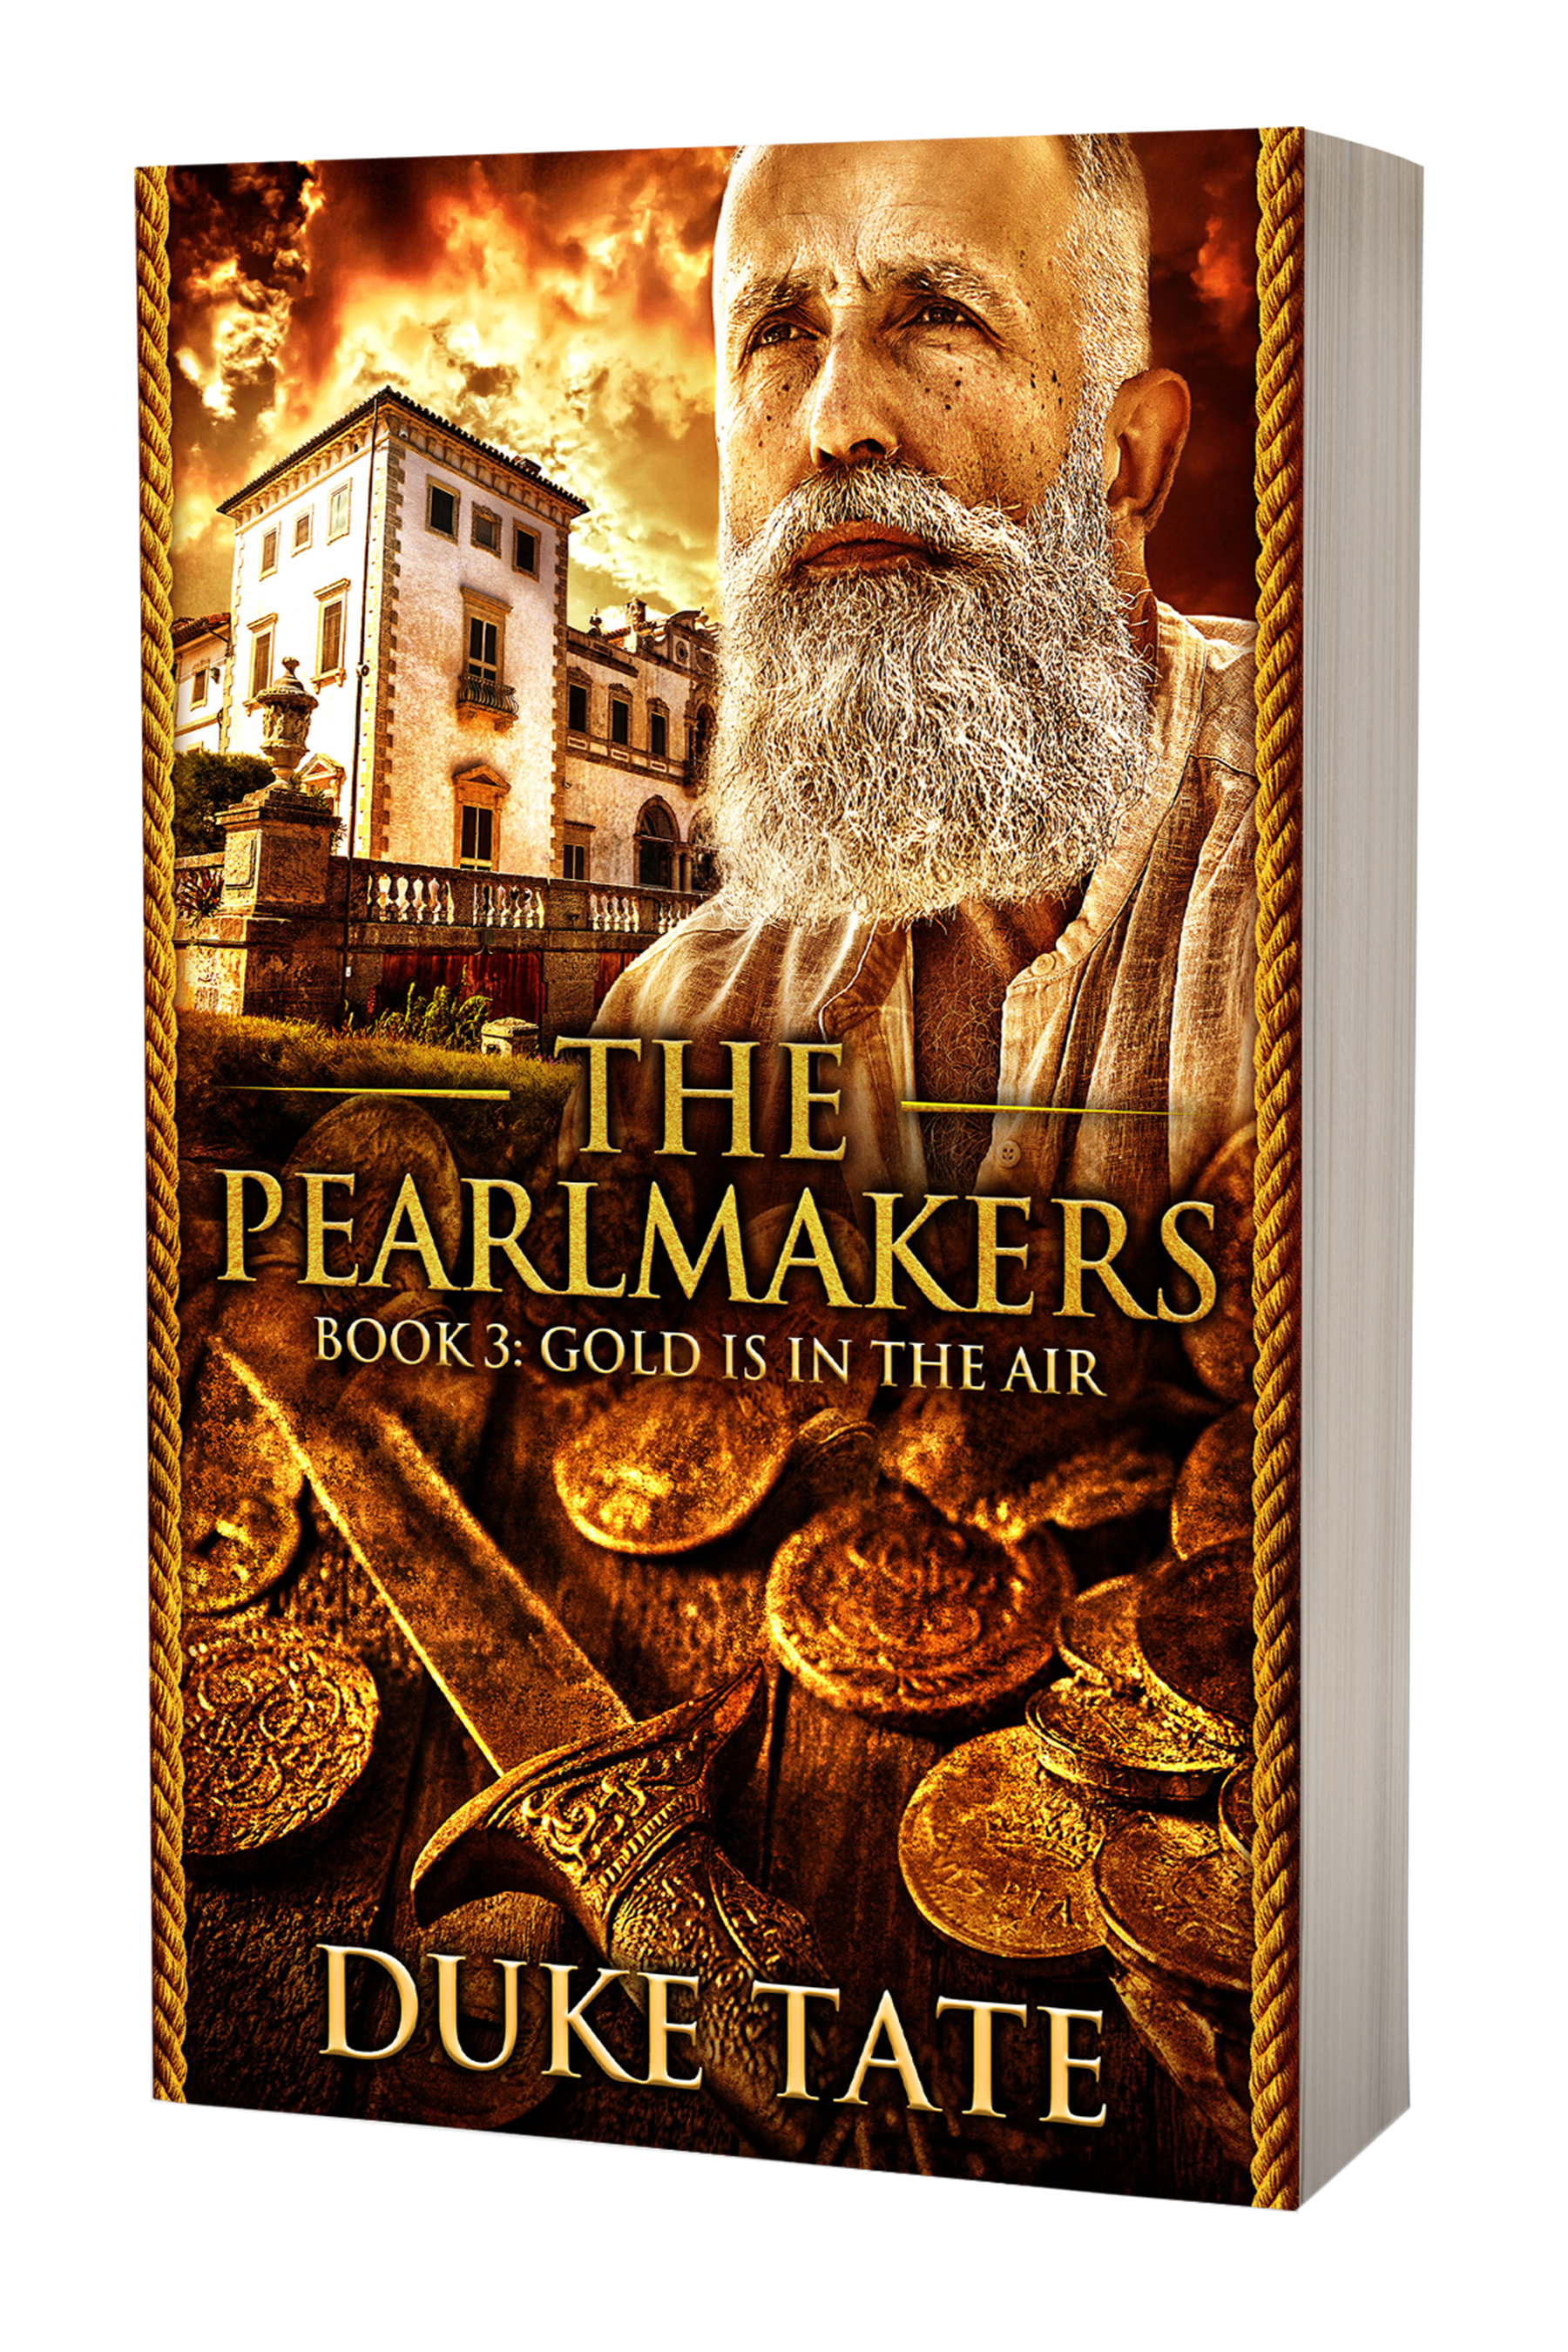 THE PEARLMAKERS GOLD IS IN THE AIR  - BOOK 3